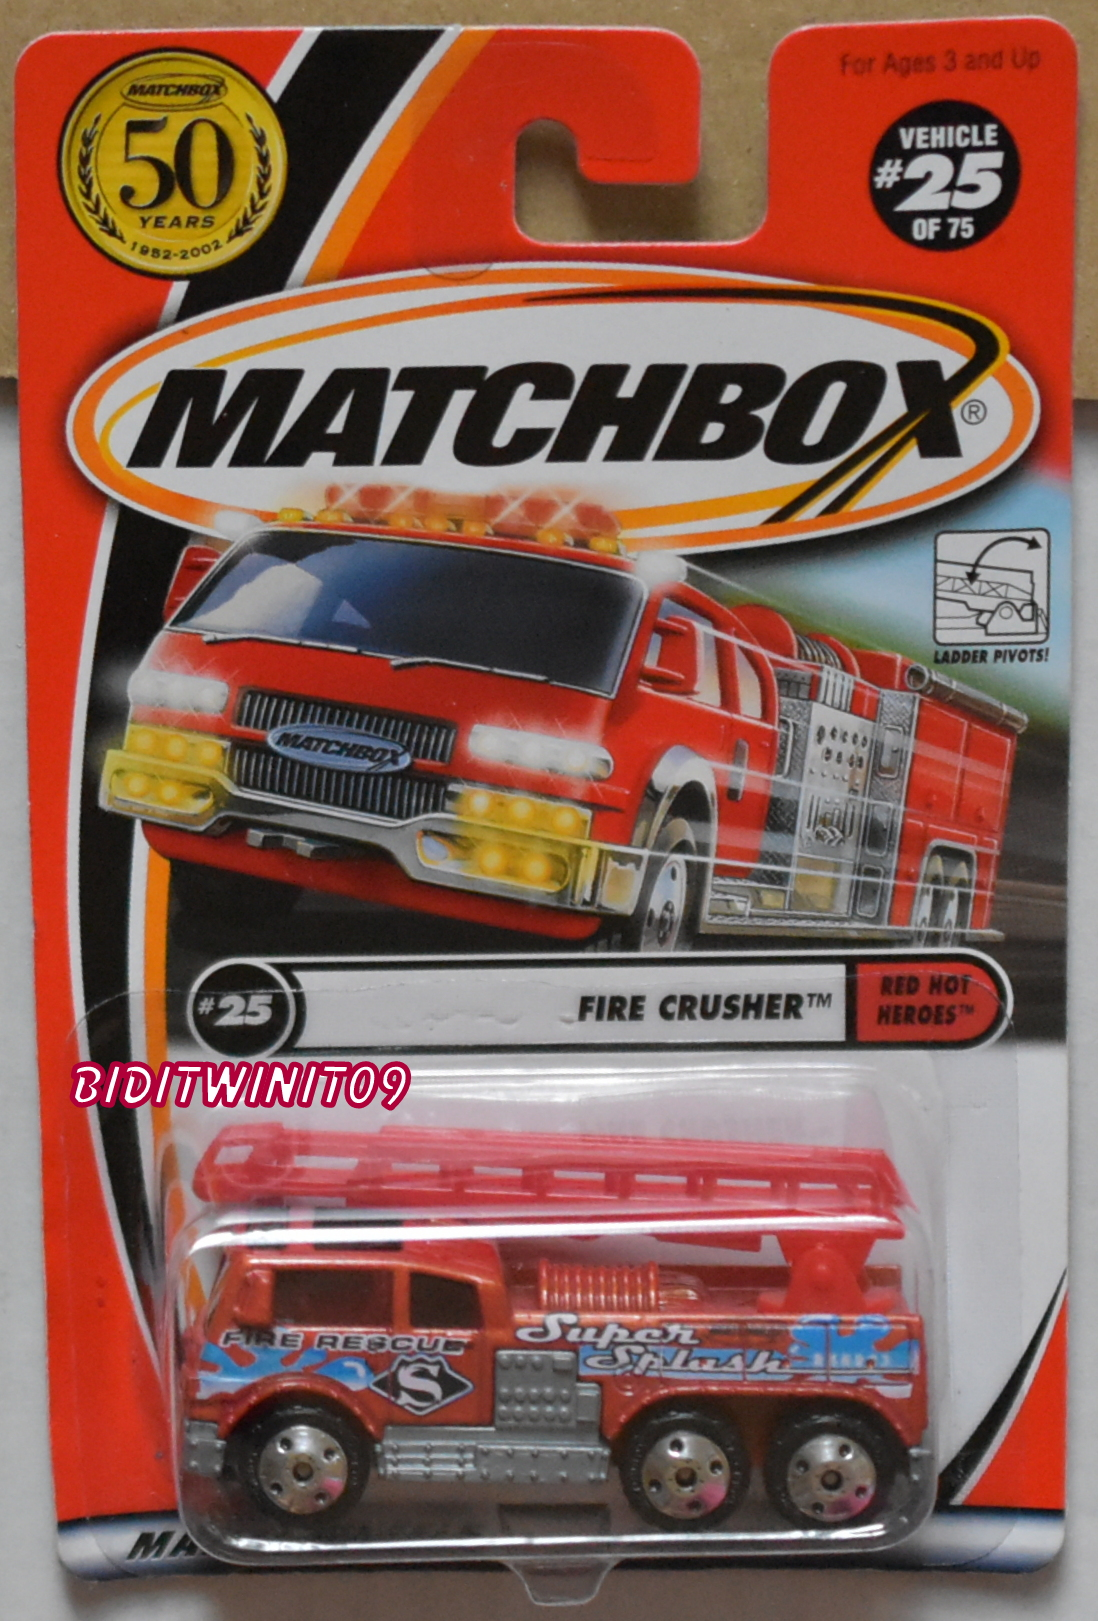 MATCHBOX 2001 50 YEARS FIRE CRUSHER RED HOT HEROES #25 E+